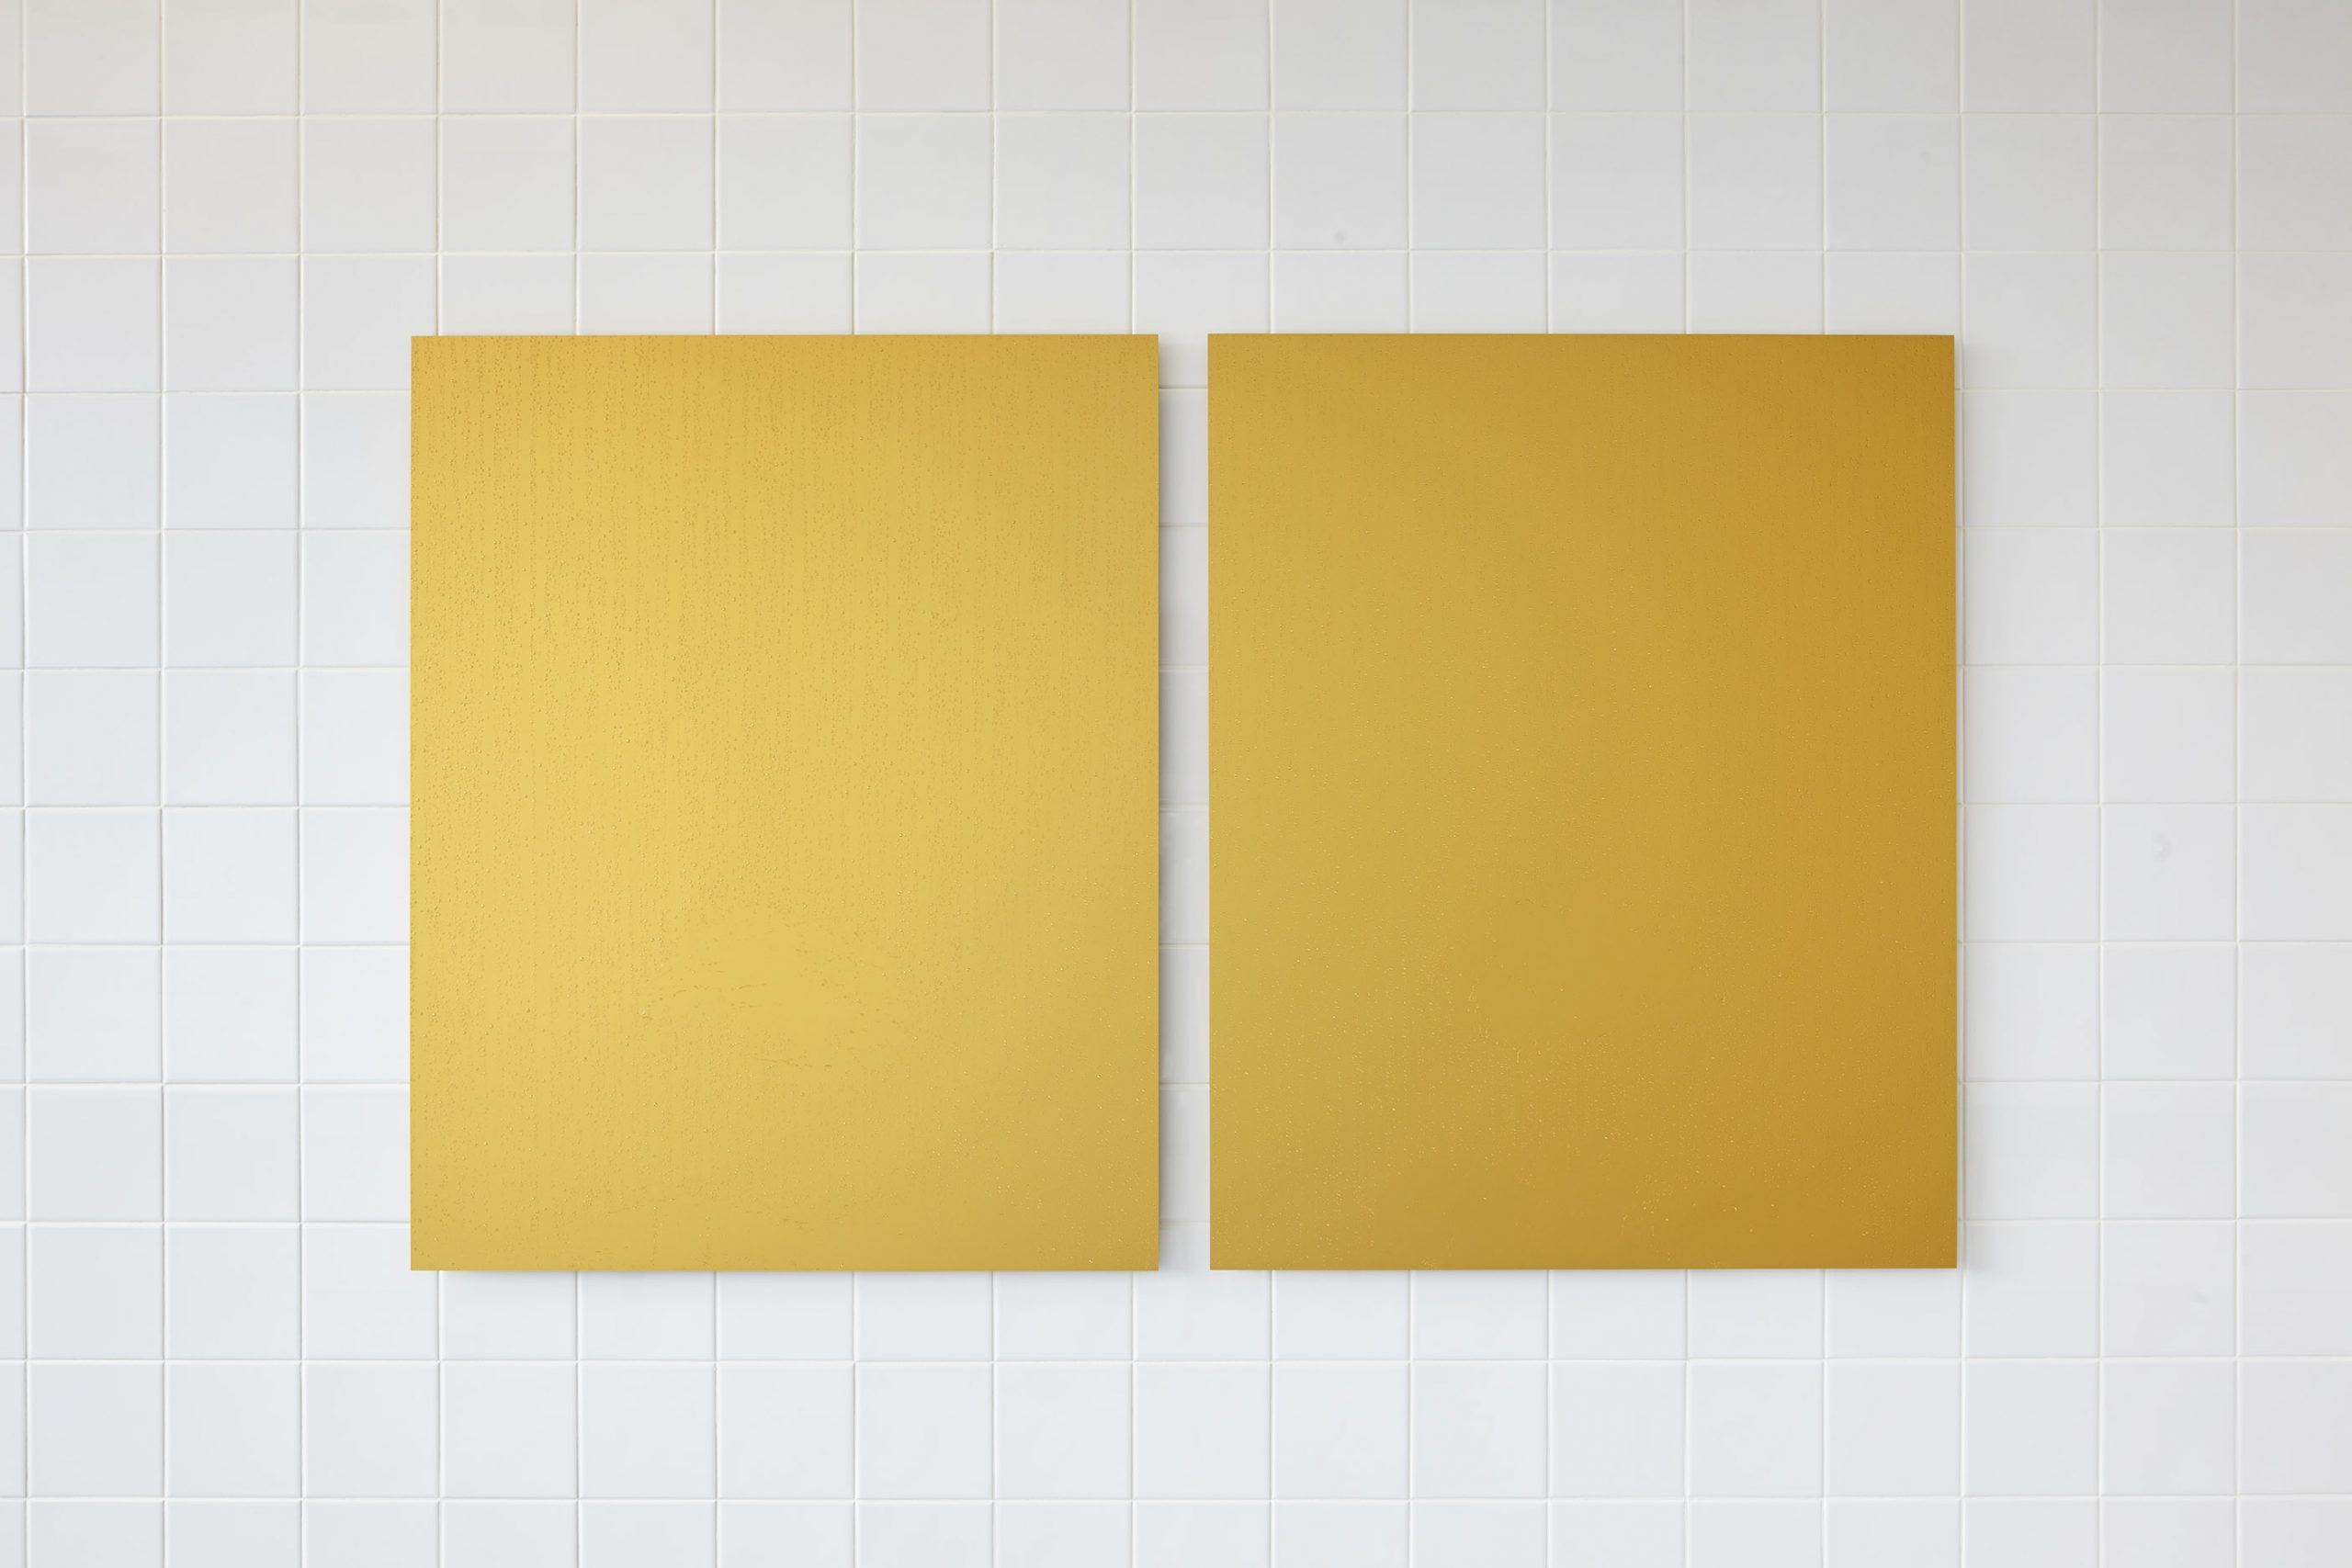 Two gold aluminium panels with clear resin droplets.